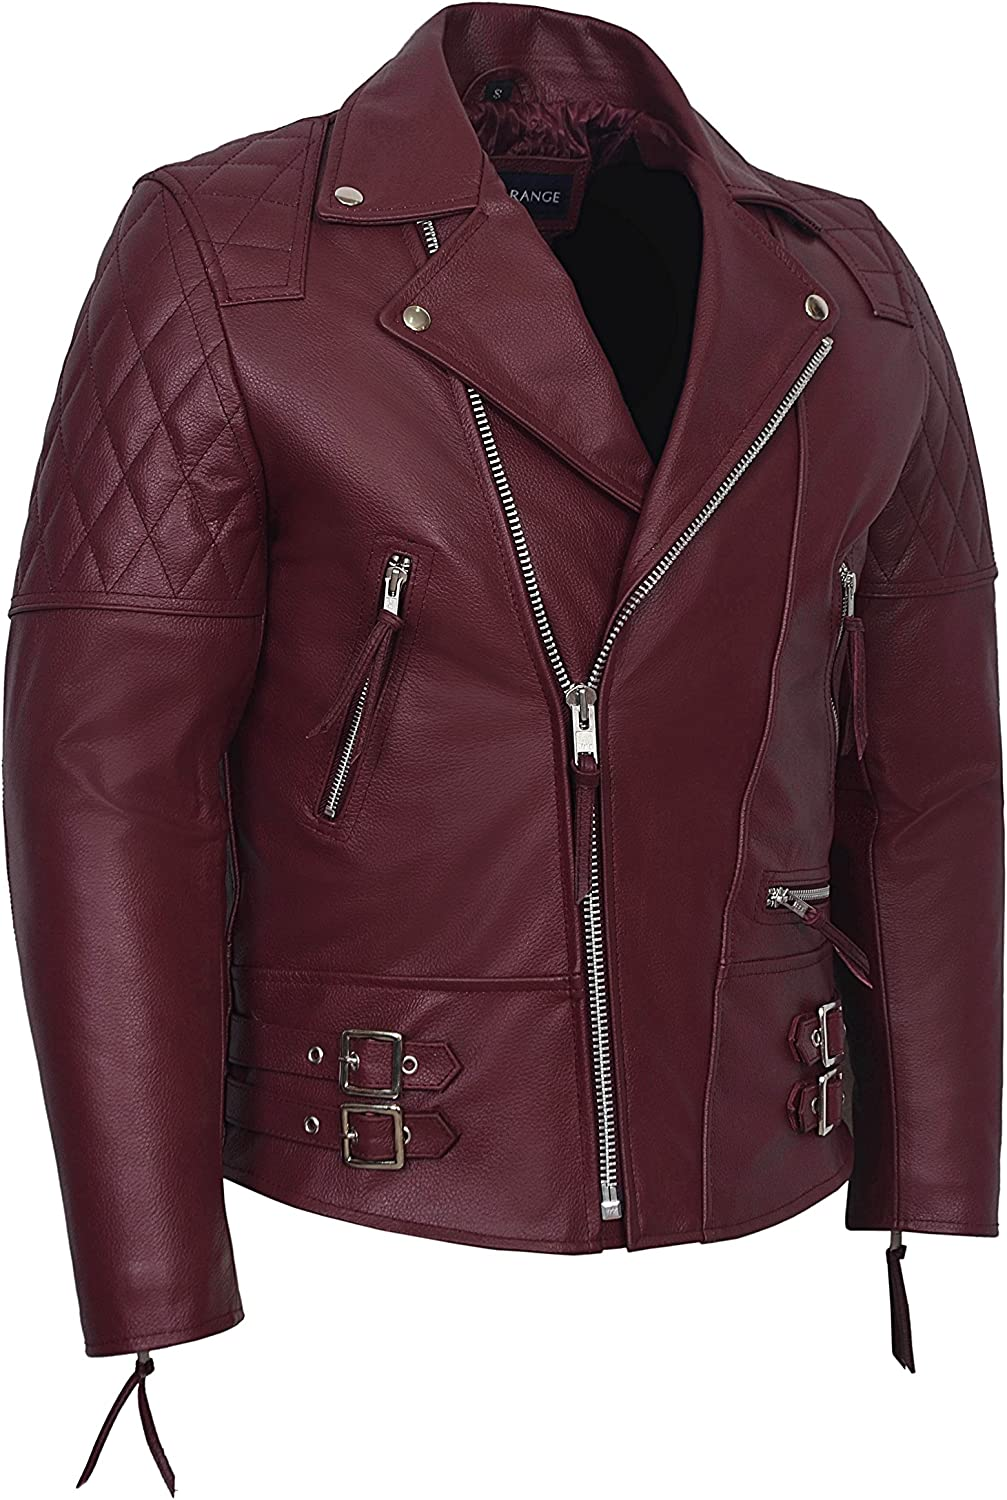 Men/'s Reckless 233 TAN Stone Washed Biker Style Motorcycle 100/% Leather Jacket